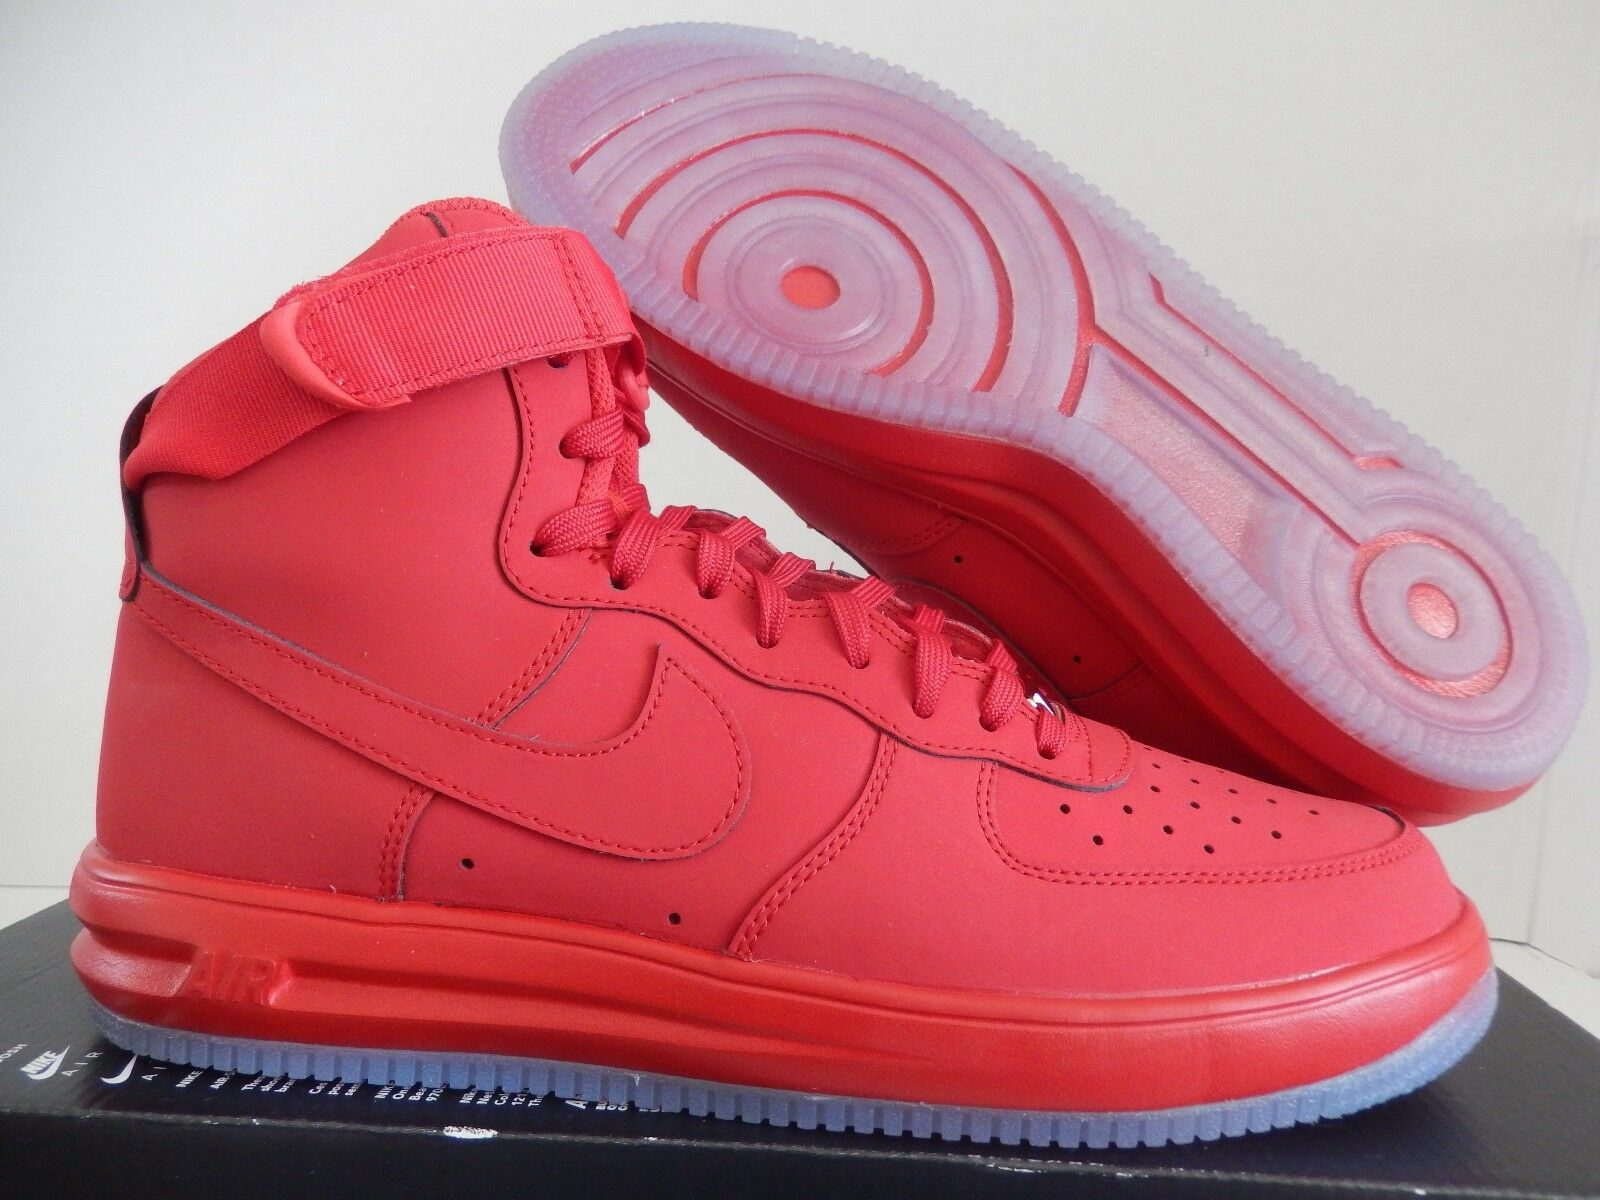 NIKE LUNAR FORCE 1 HI HIGH '14 UNIVERSITY RED